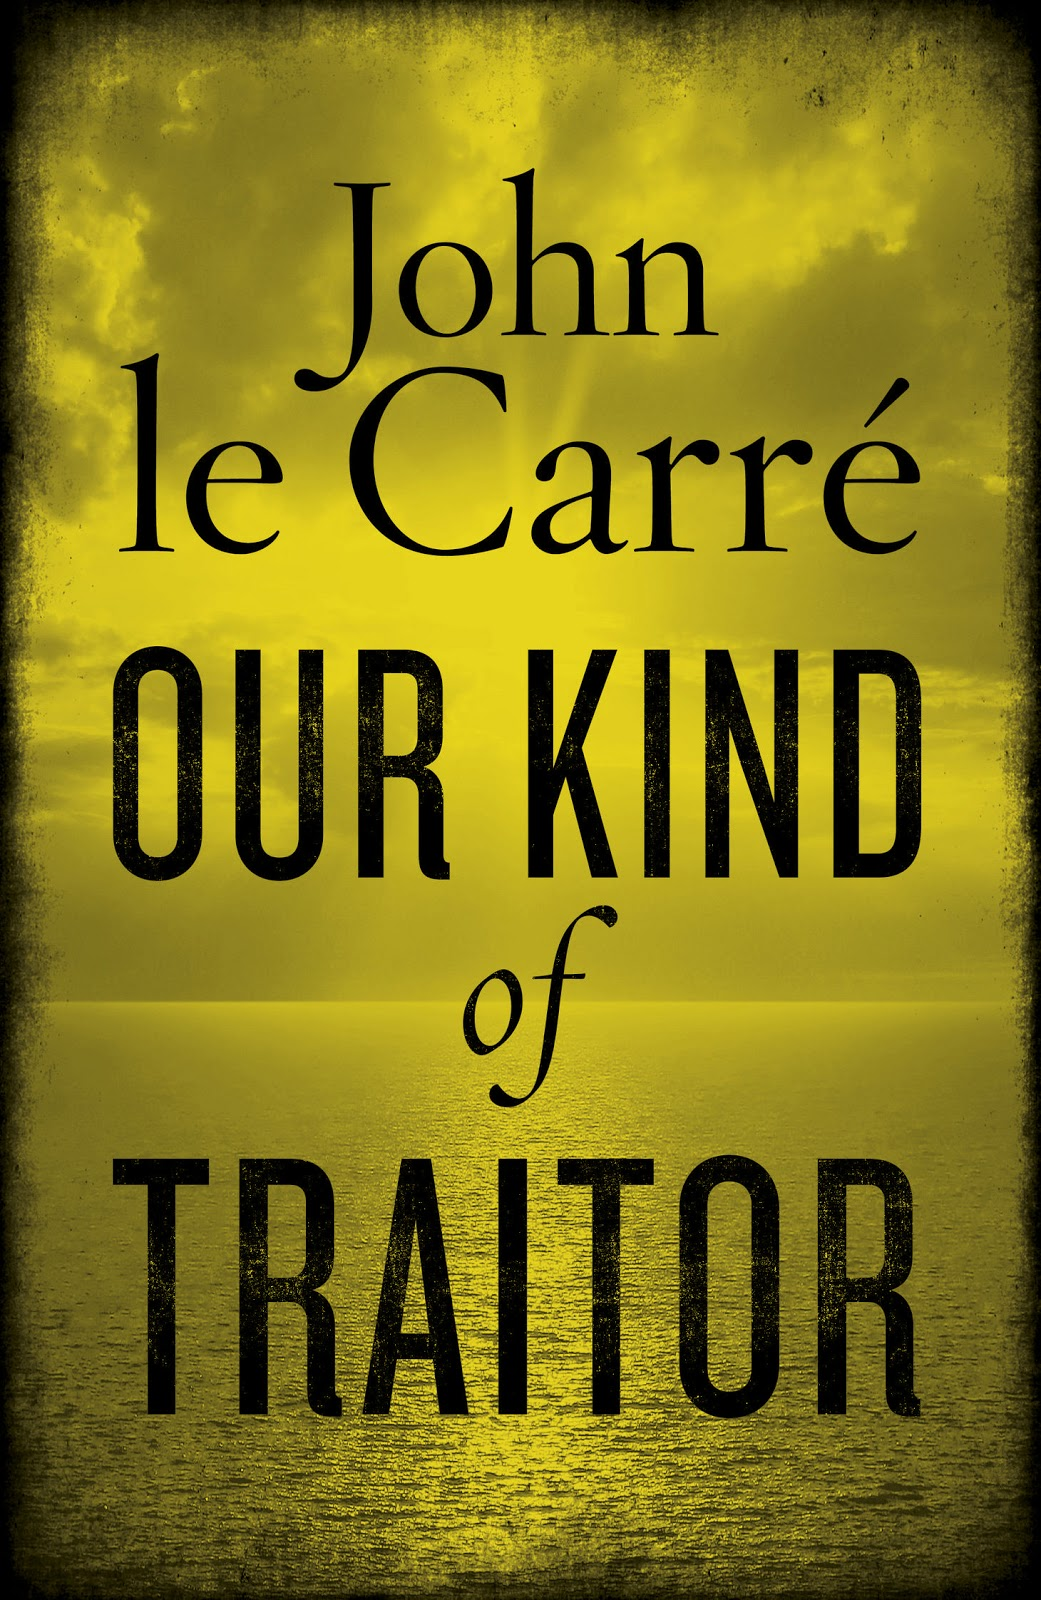 movie review 1 traitor Our kind of traitor is a 2016 british spy thriller film directed by susanna white  and written by  as of 1 september 2016, it has grossed $9,419,763 worldwide   on the review aggregator rotten tomatoes, our kind of traitor has an  approval.